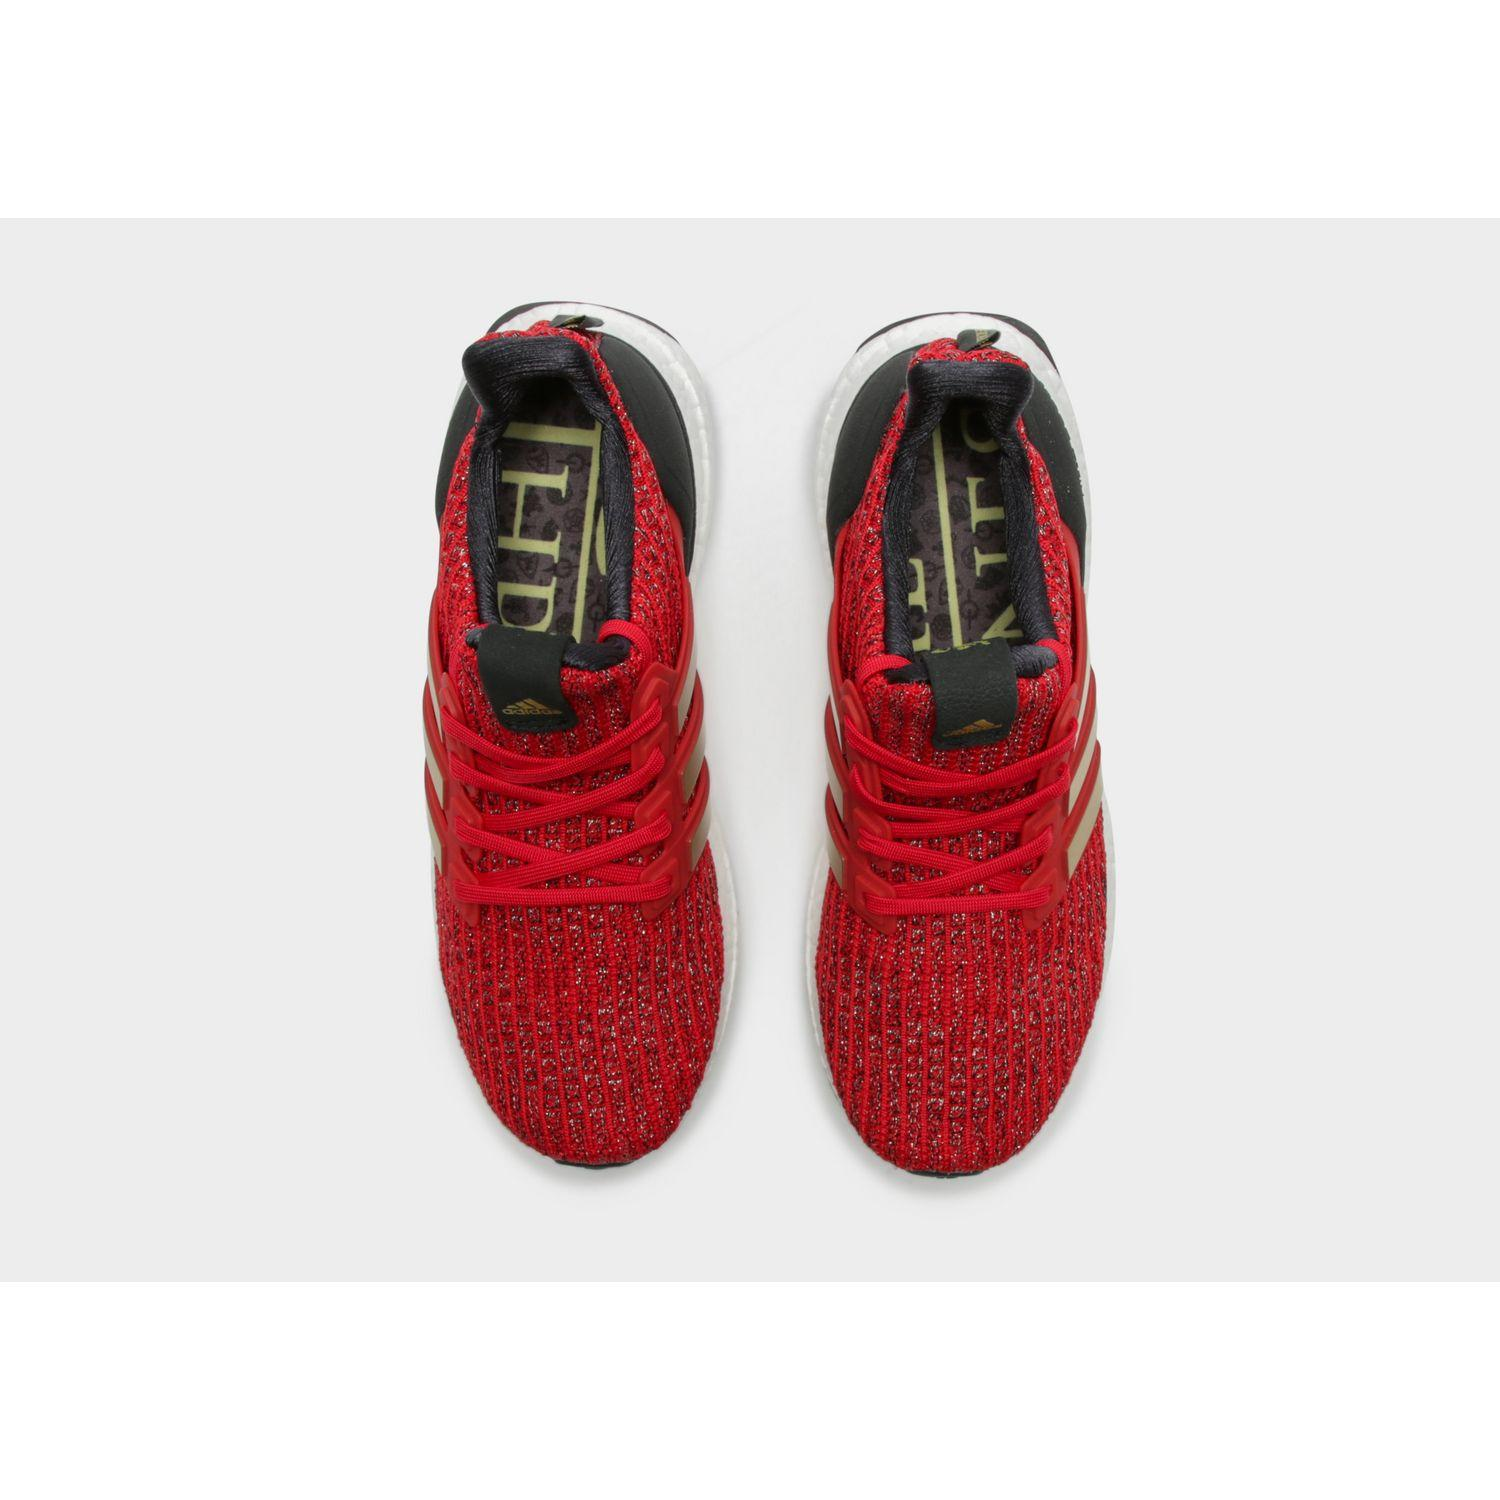 36808bd9549 Lyst - adidas Ultraboost X Game Of Thrones Shoes in Red for Men